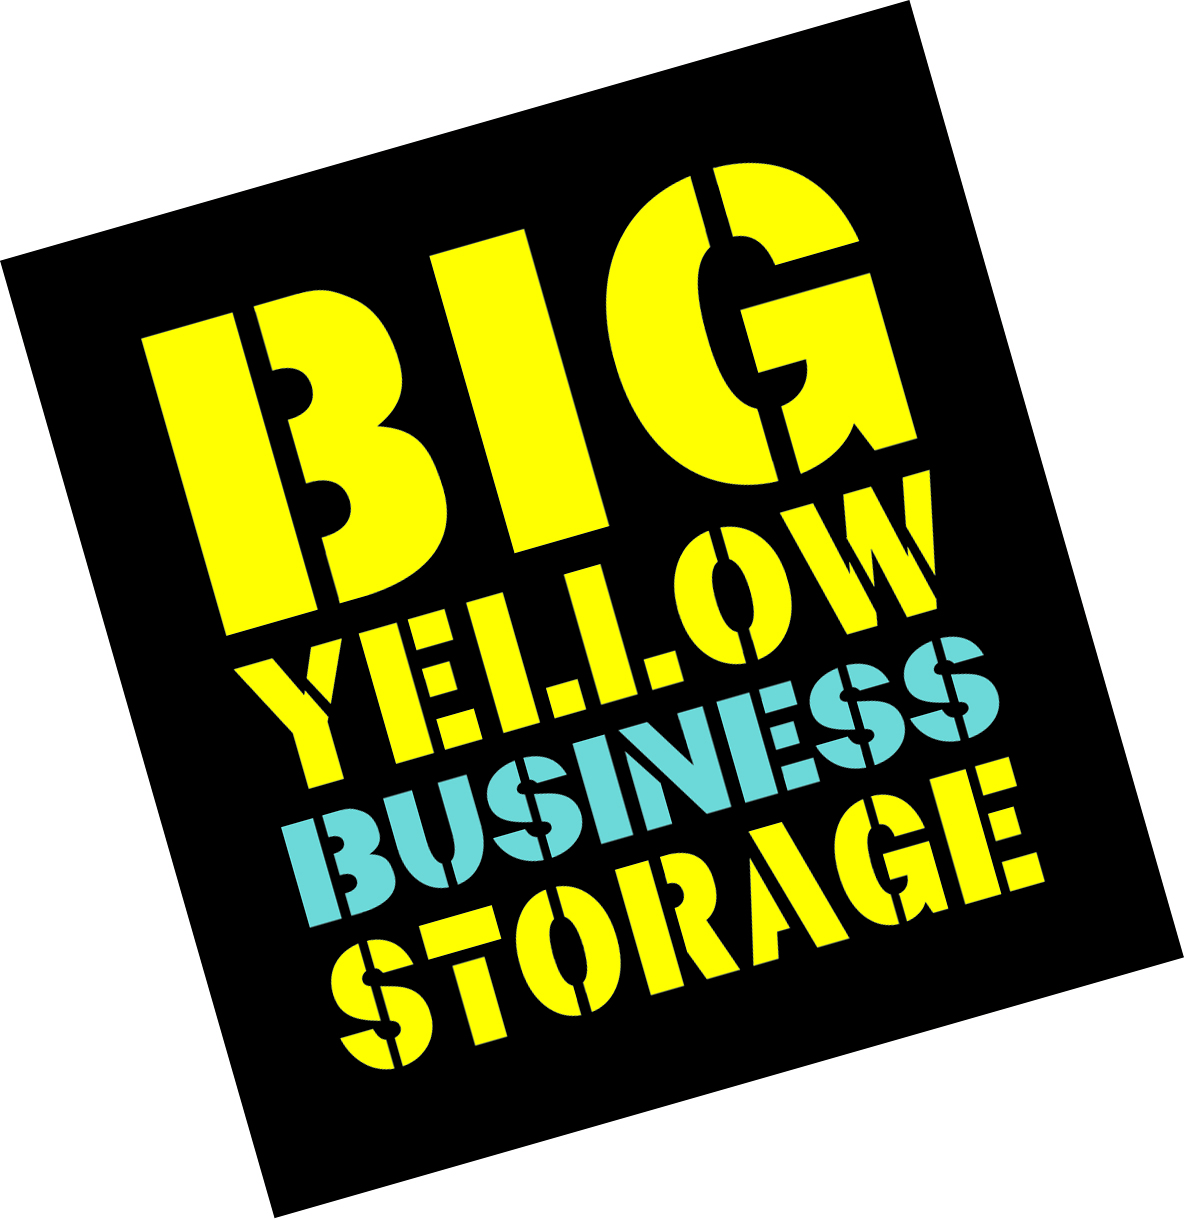 big yellow business storage work from home wisdom. Black Bedroom Furniture Sets. Home Design Ideas